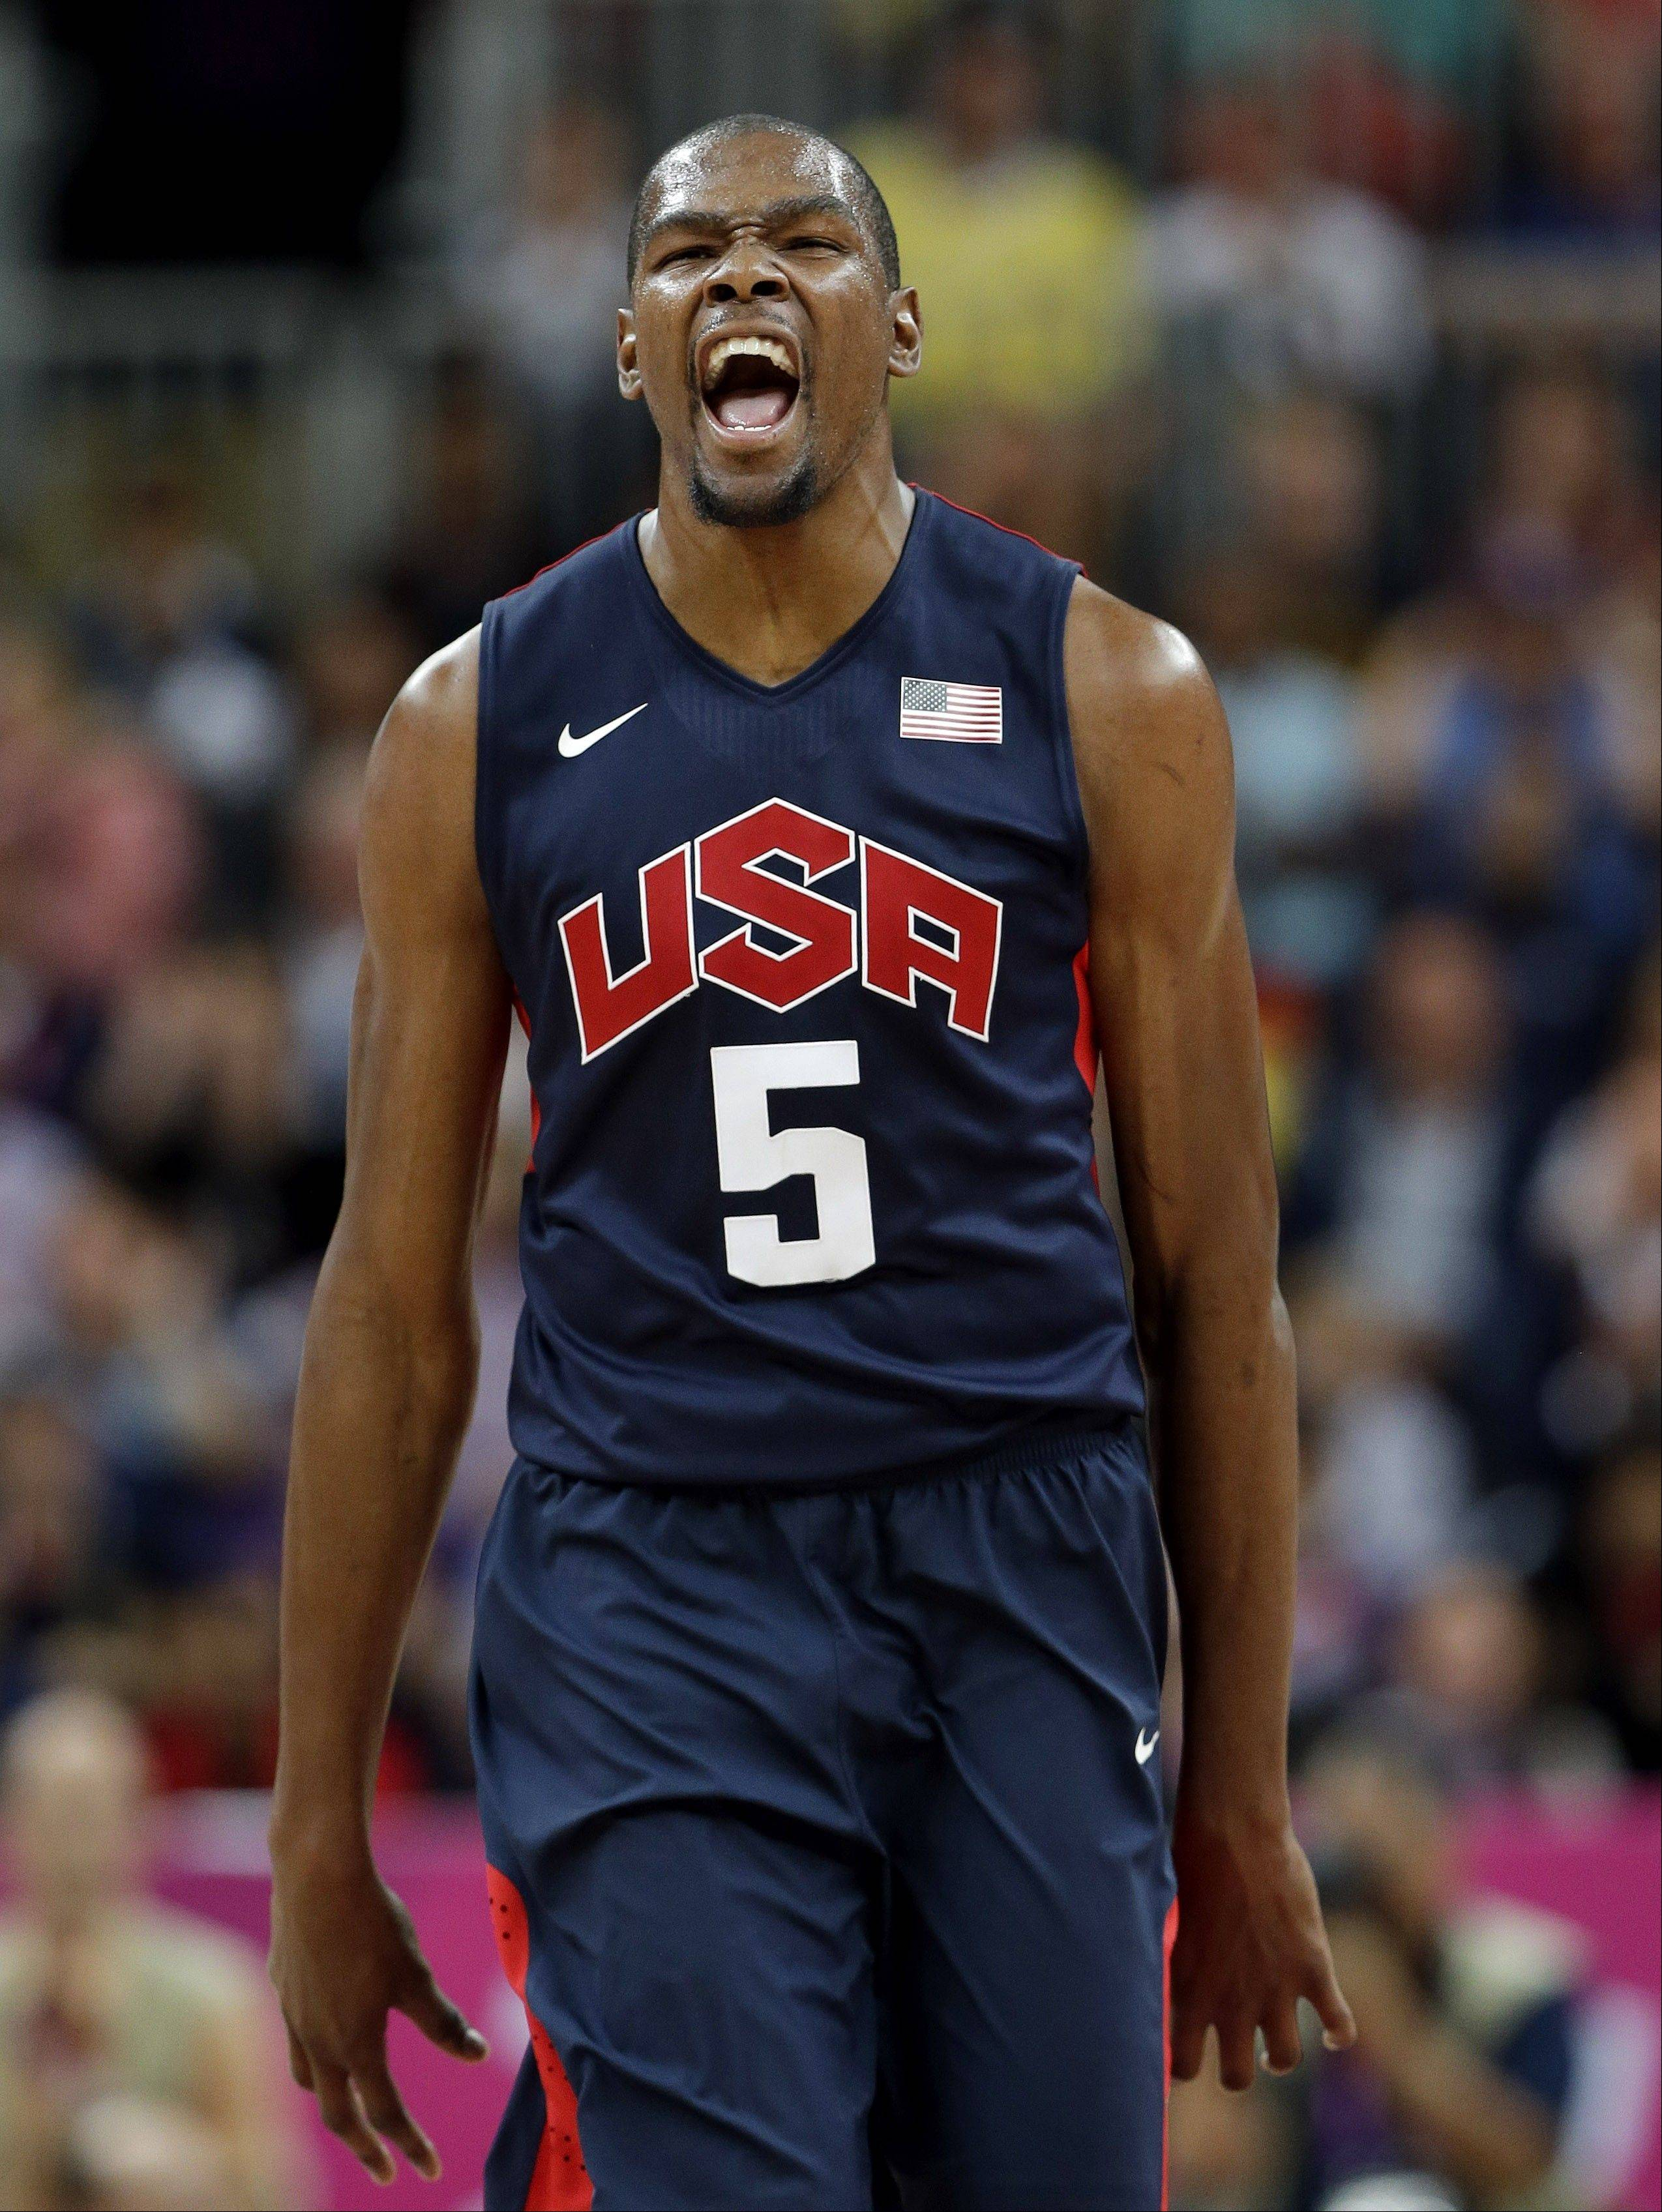 USA's Kevin Durant reacts after hitting a three point basket during a preliminary men's basketball game Monday against Argentina at the 2012 Summer Olympics in London.